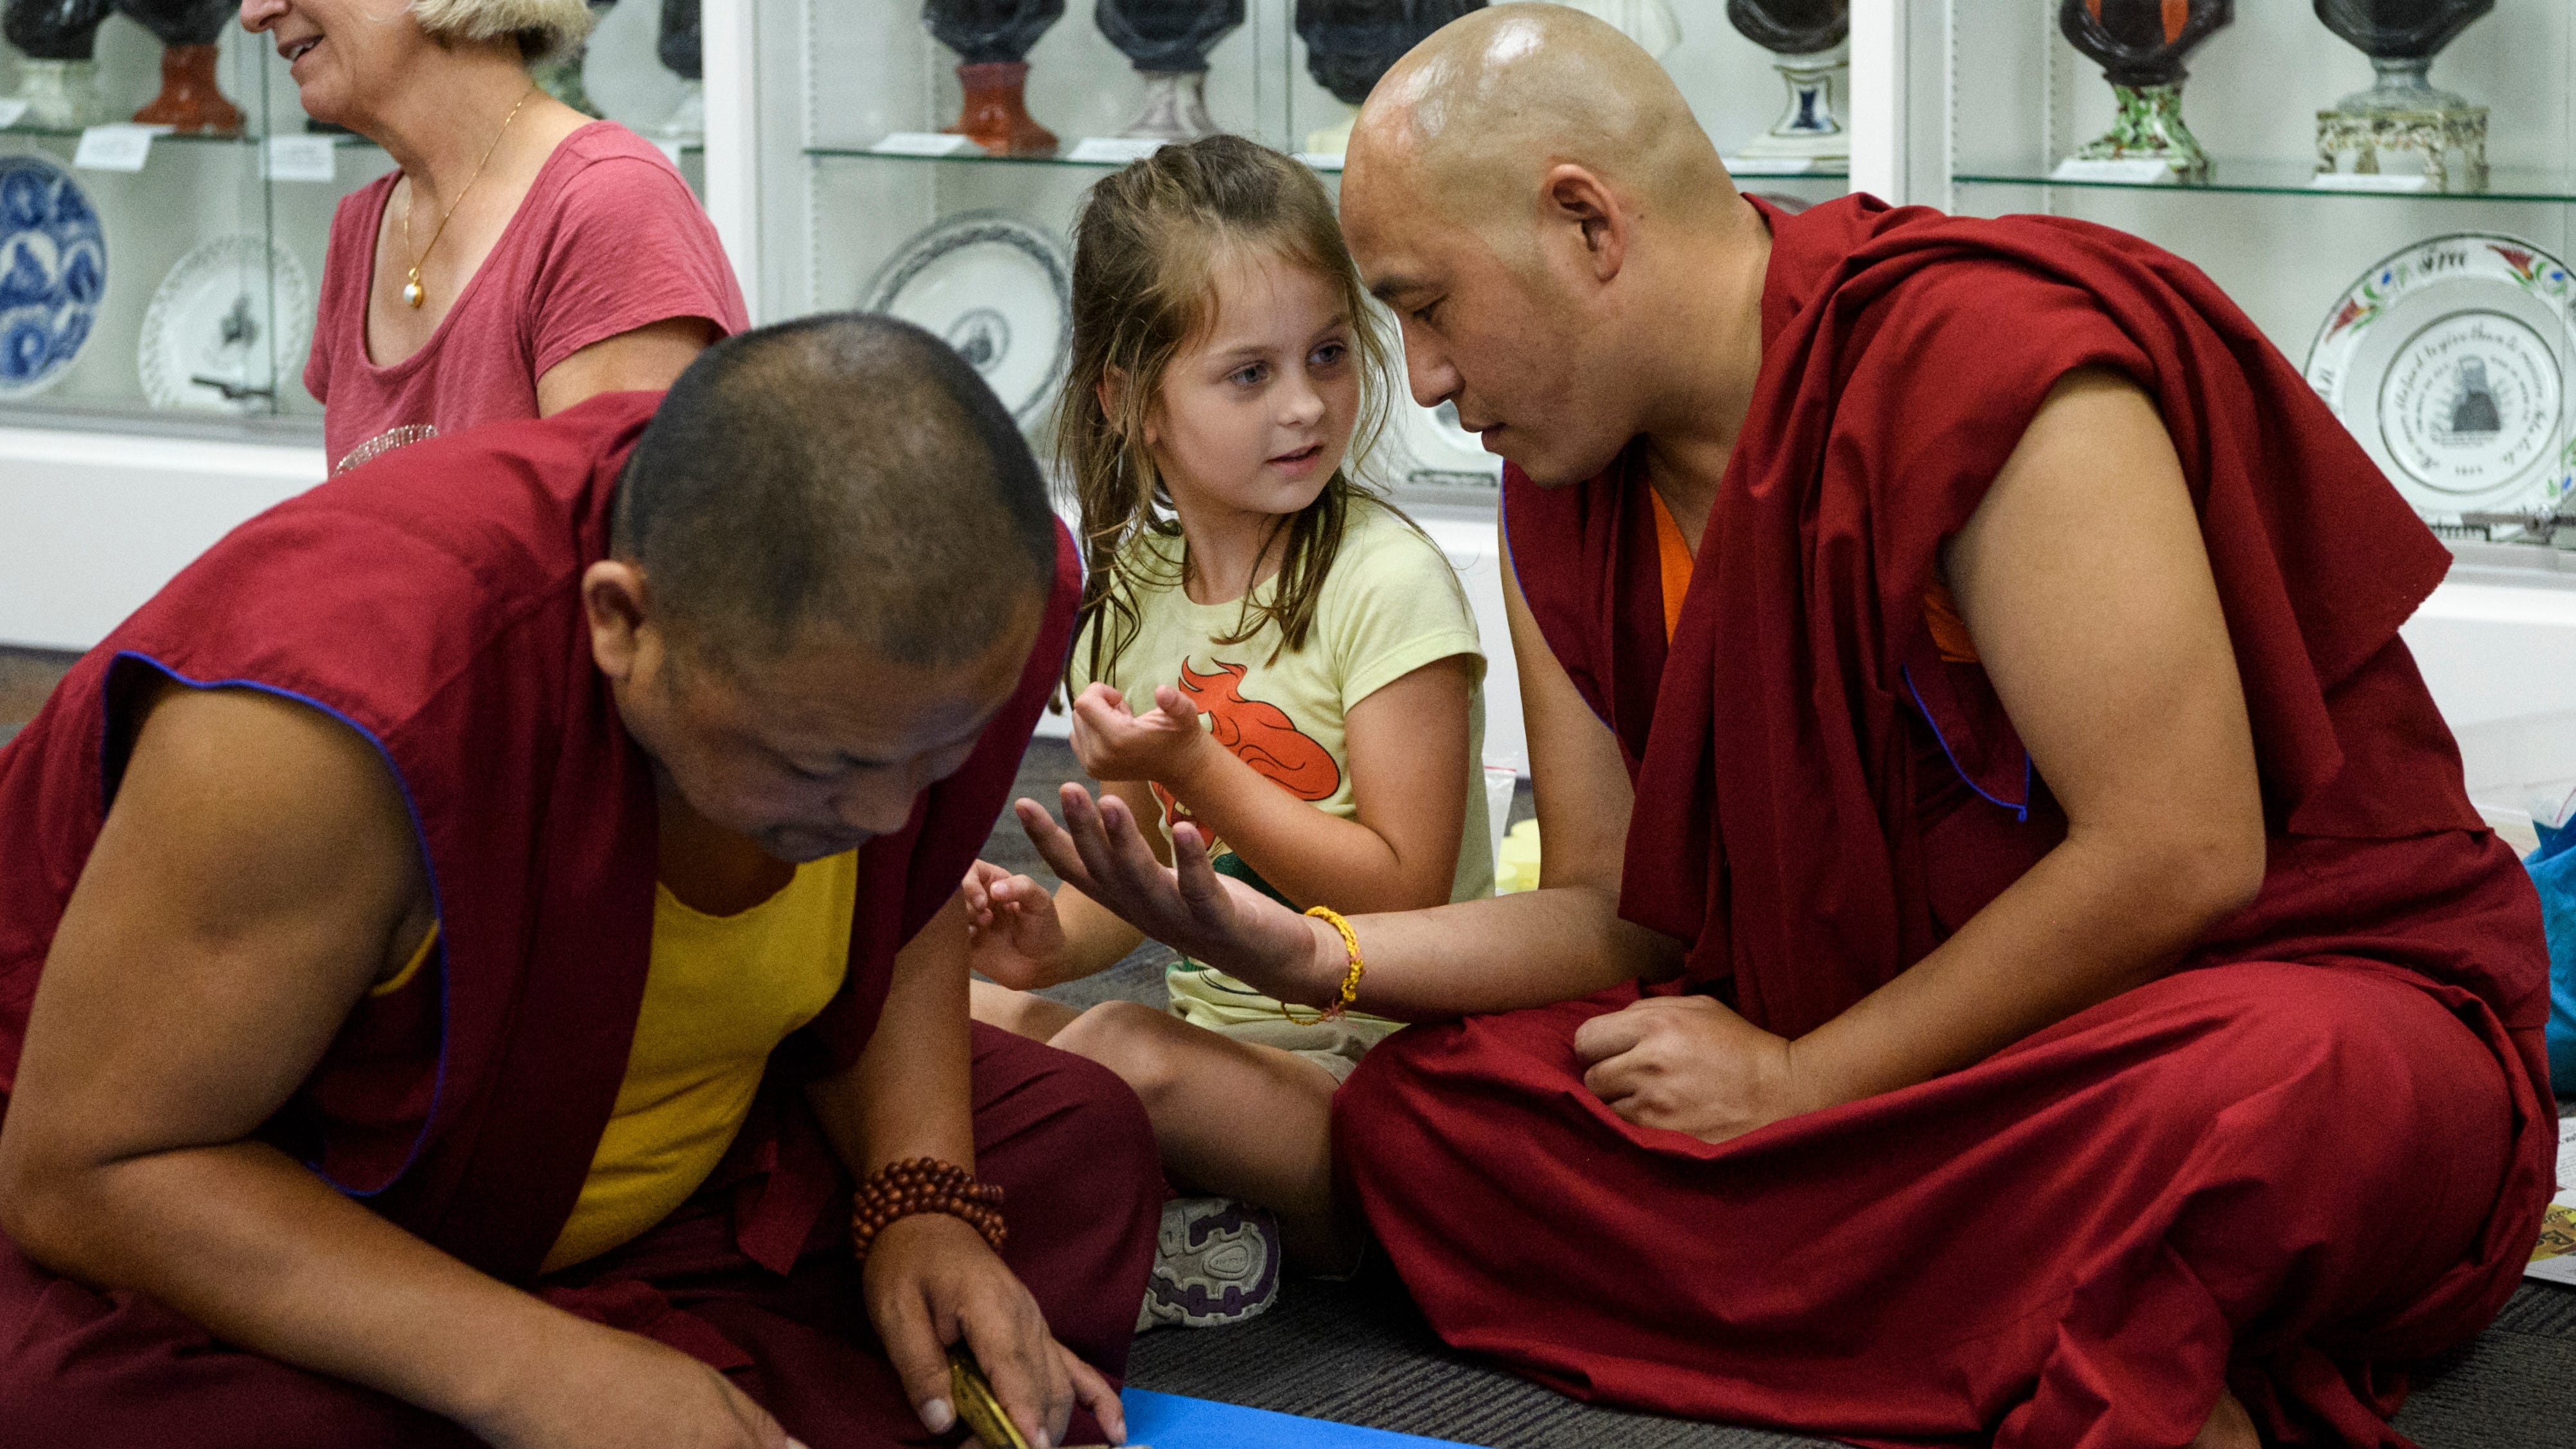 Ayla Martin, 6, center, and Yeshi Rabgyal, right, a monk visiting from Tashi Kyil Monastery in Dehra Dun, India, compare the size of each other's hands as Kalsang Jinpa, left, works on a World Peace Sand Mandala inside the John Wesley Gallery in the basement of Neu Chapel at the University of Evansville, Monday evening, Aug. 20, 2018. Martin's grandmother Cecile Martin, back left, has coordinated the monks past three trips to Evansville and introduced Rabgyal to Martin when she was only 6-months-old.